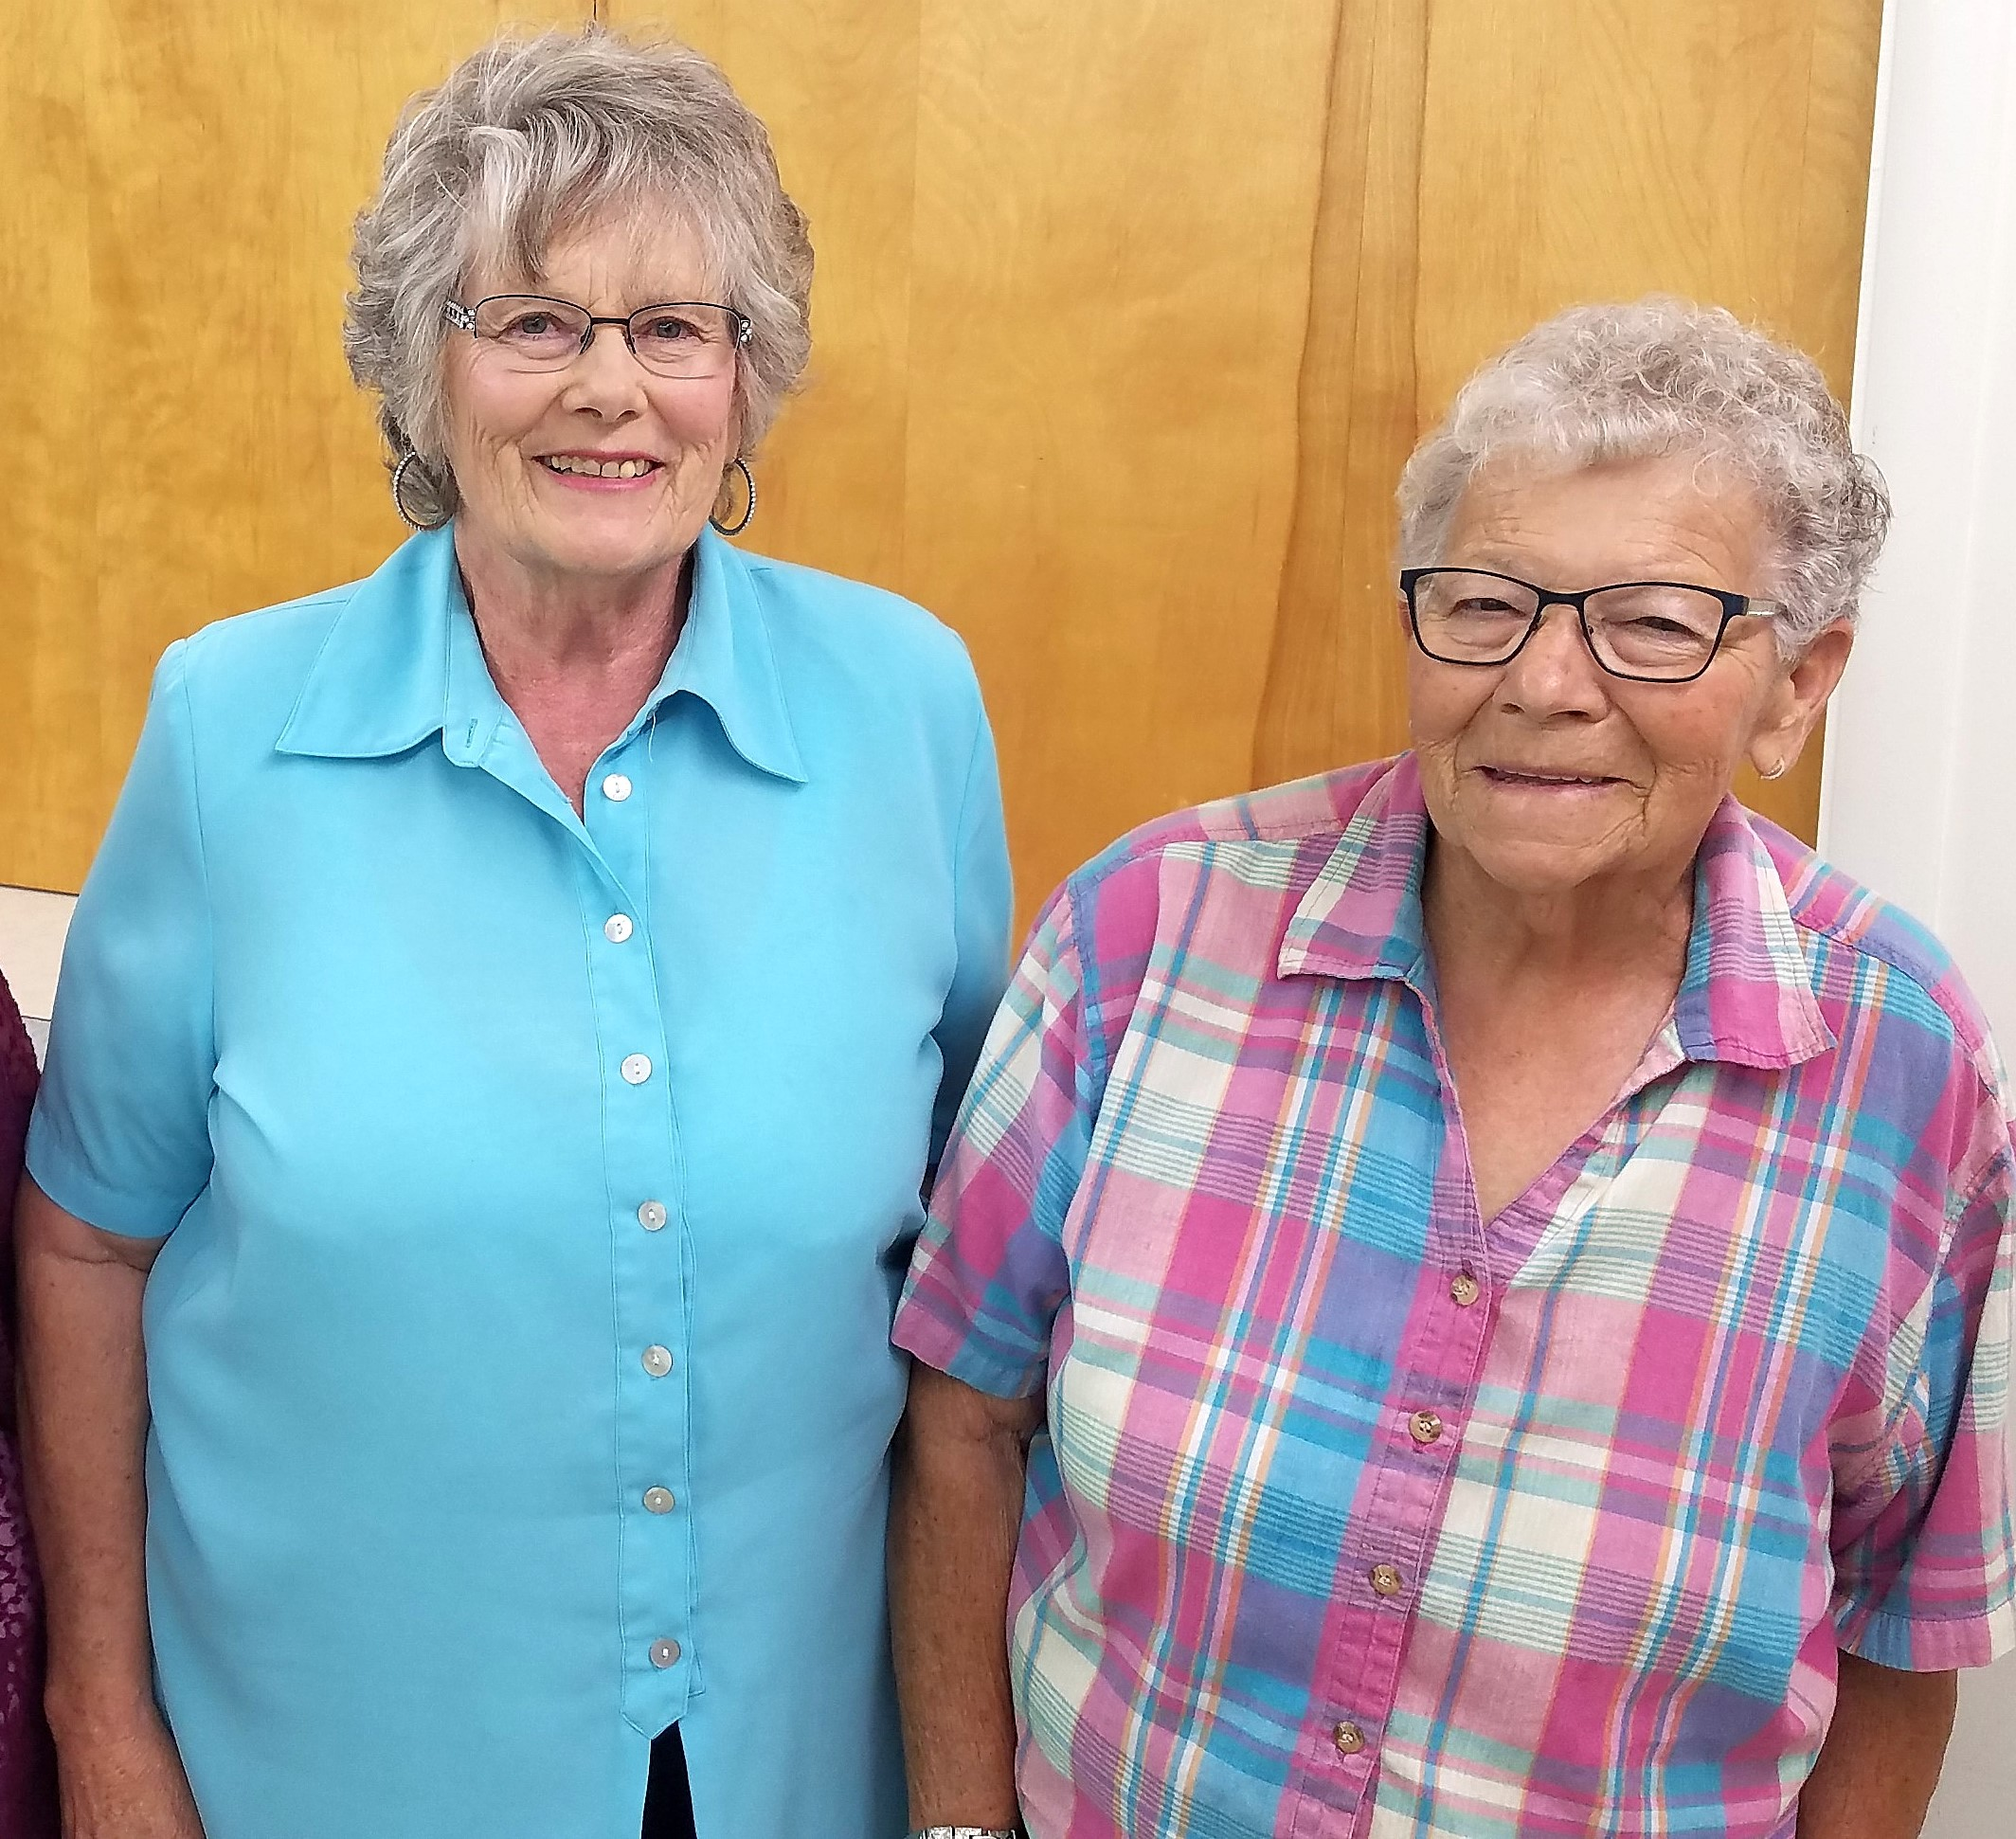 BETTY COLLINS, JANET RICE, AND DOROTHY TAYLOR SHARE THEIR EXPERIENCES AS SISTERS GROWING UP IN BROADUS, MONTANA